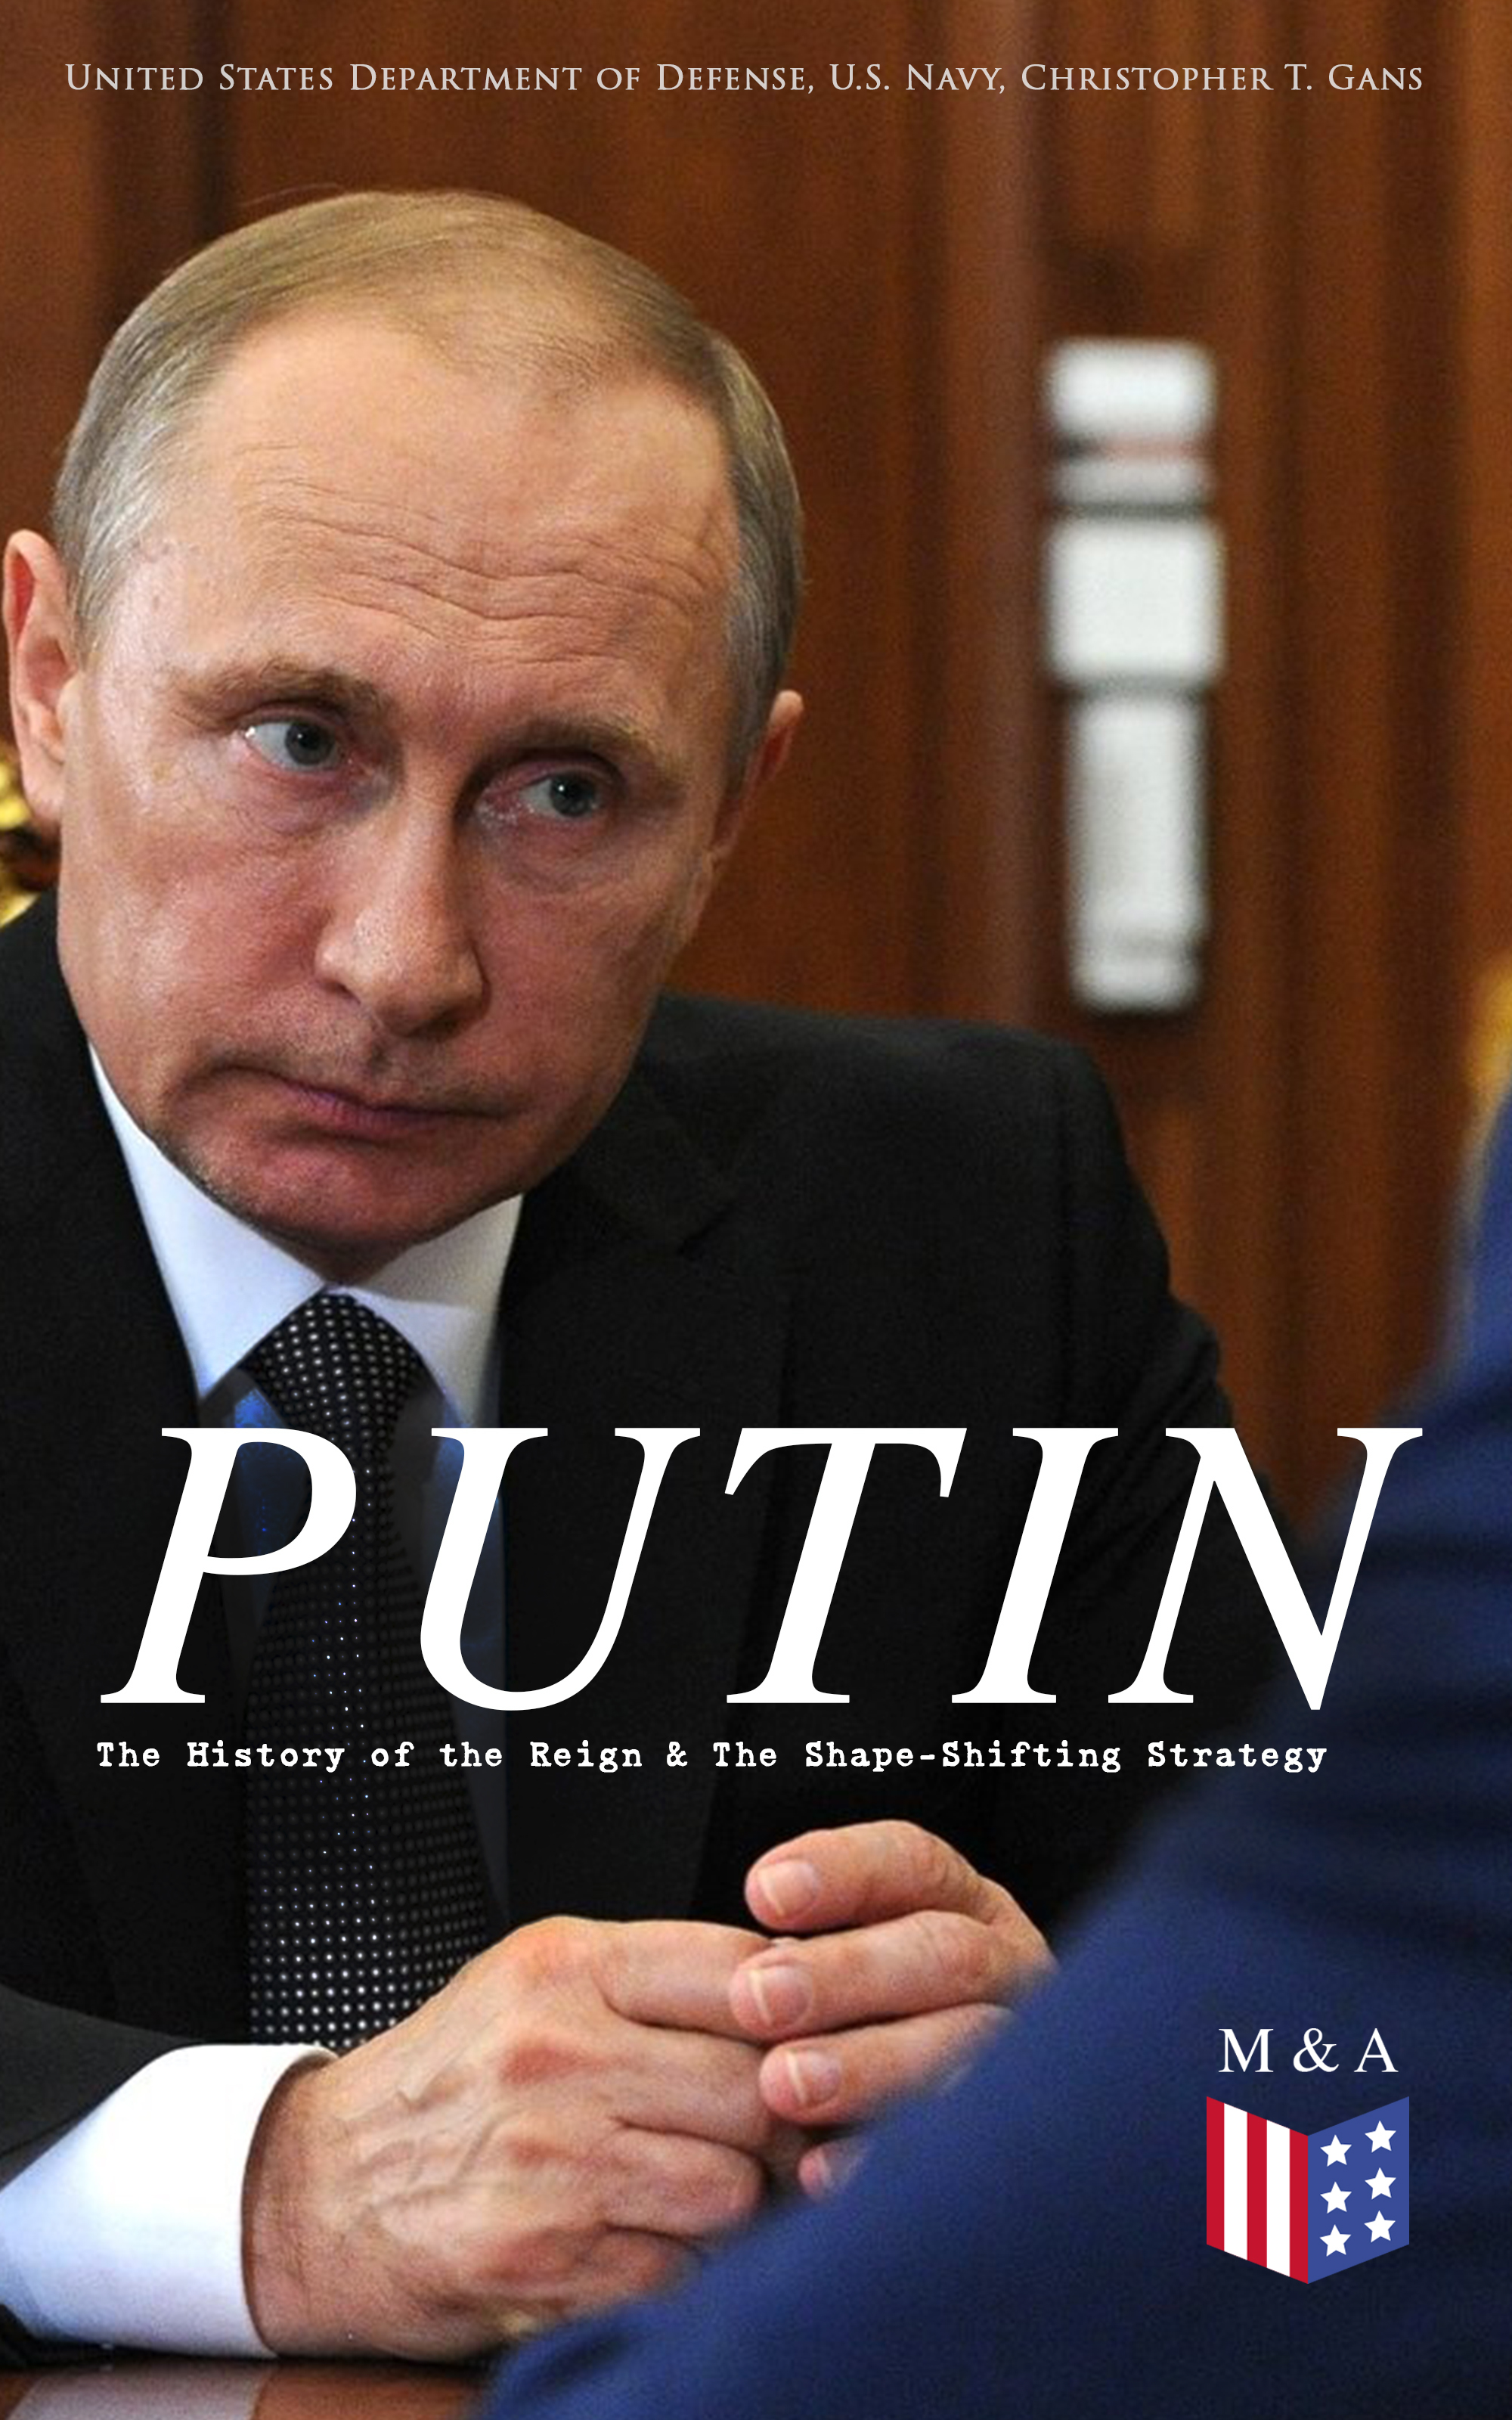 United States Department of Defense PUTIN: The History of the Reign & The Shape-Shifting Strategy knox john jay a history of banking in the united states